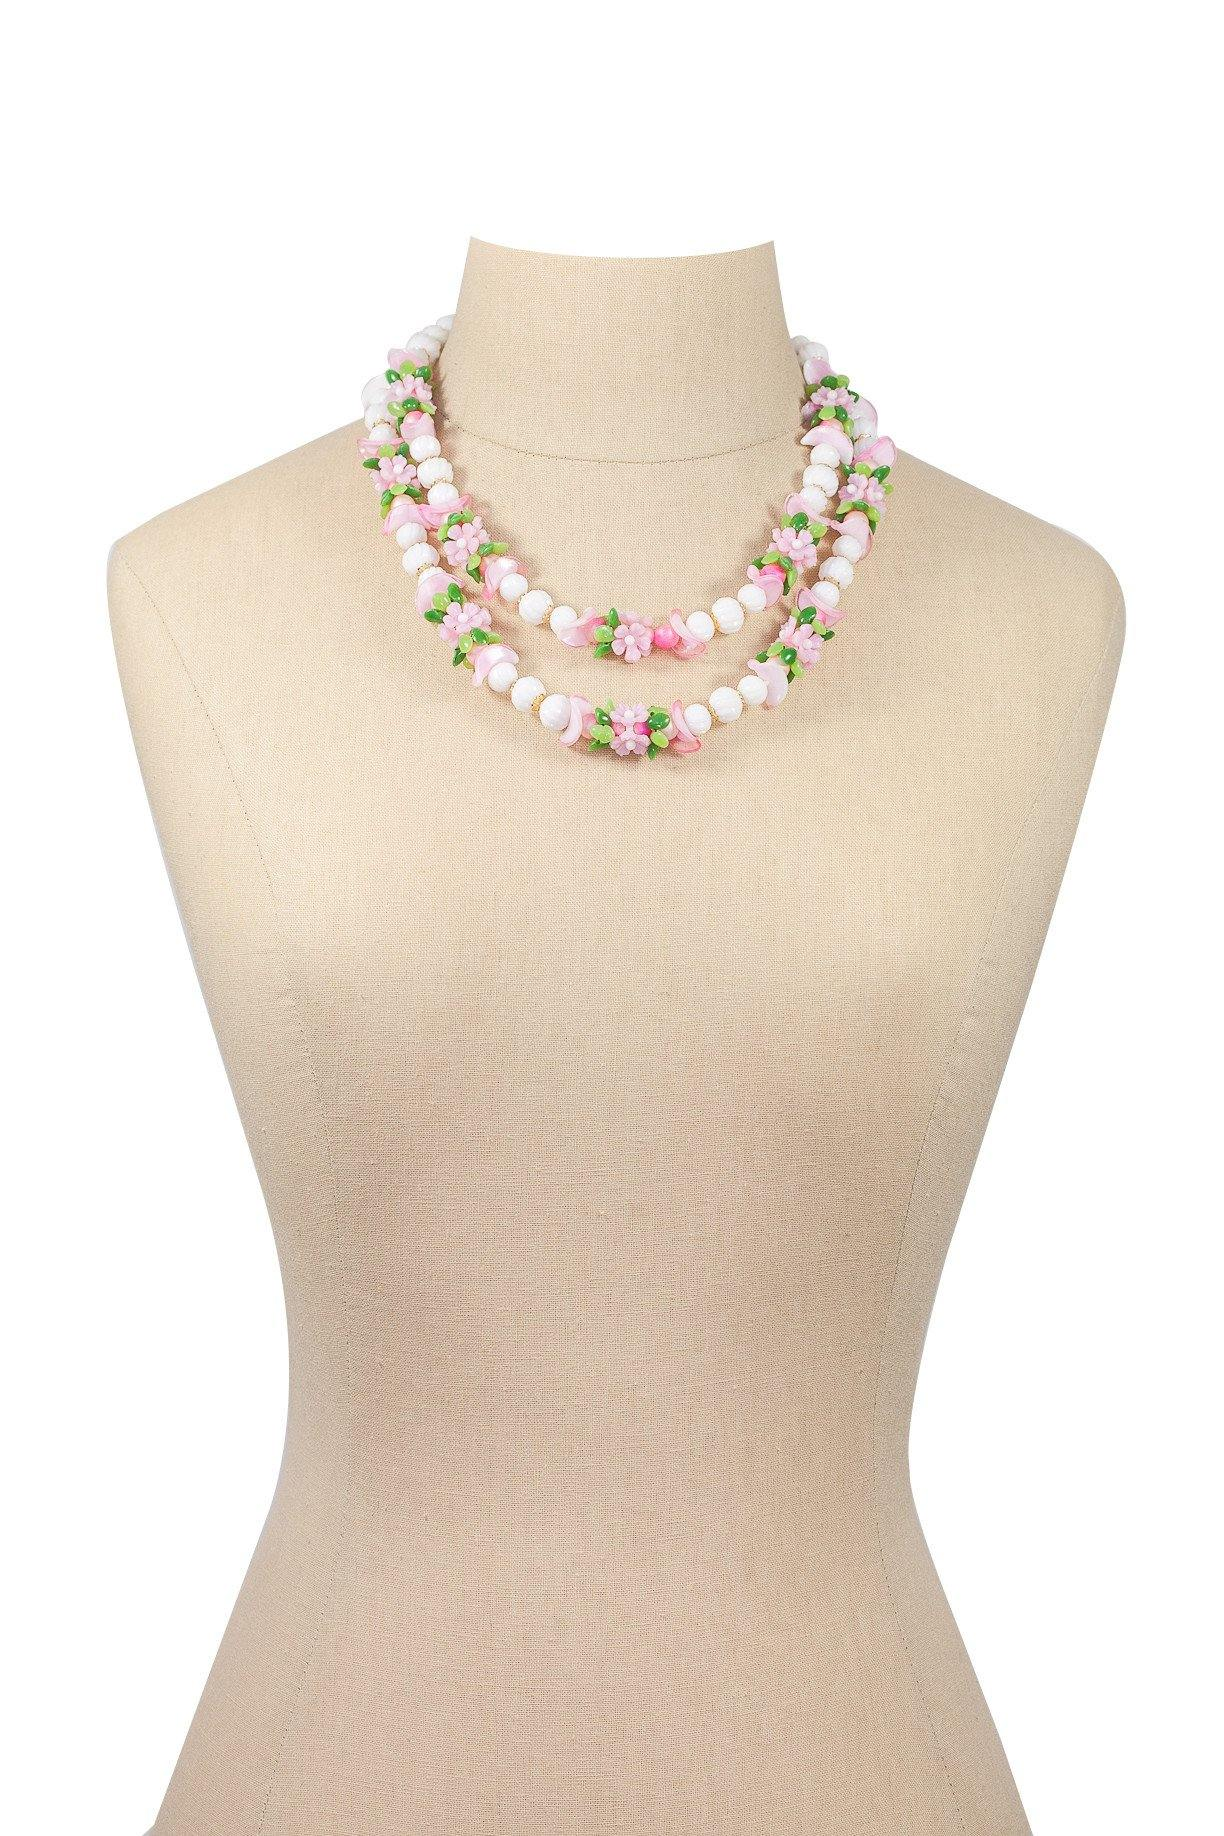 50's Vintage Beaded Floral Necklace